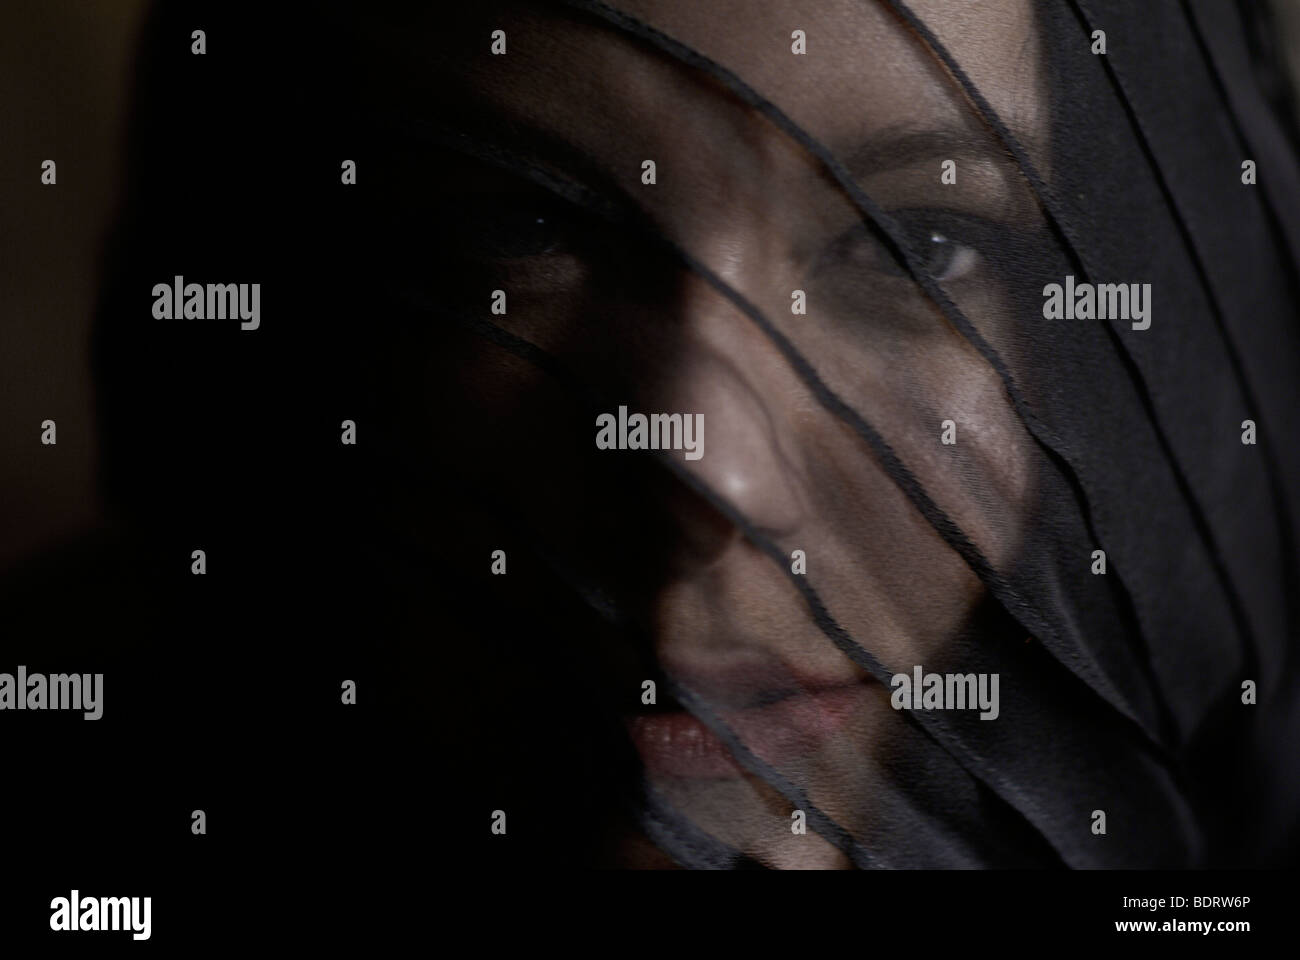 Young woman wearing black and a veil, portrait - Stock Image